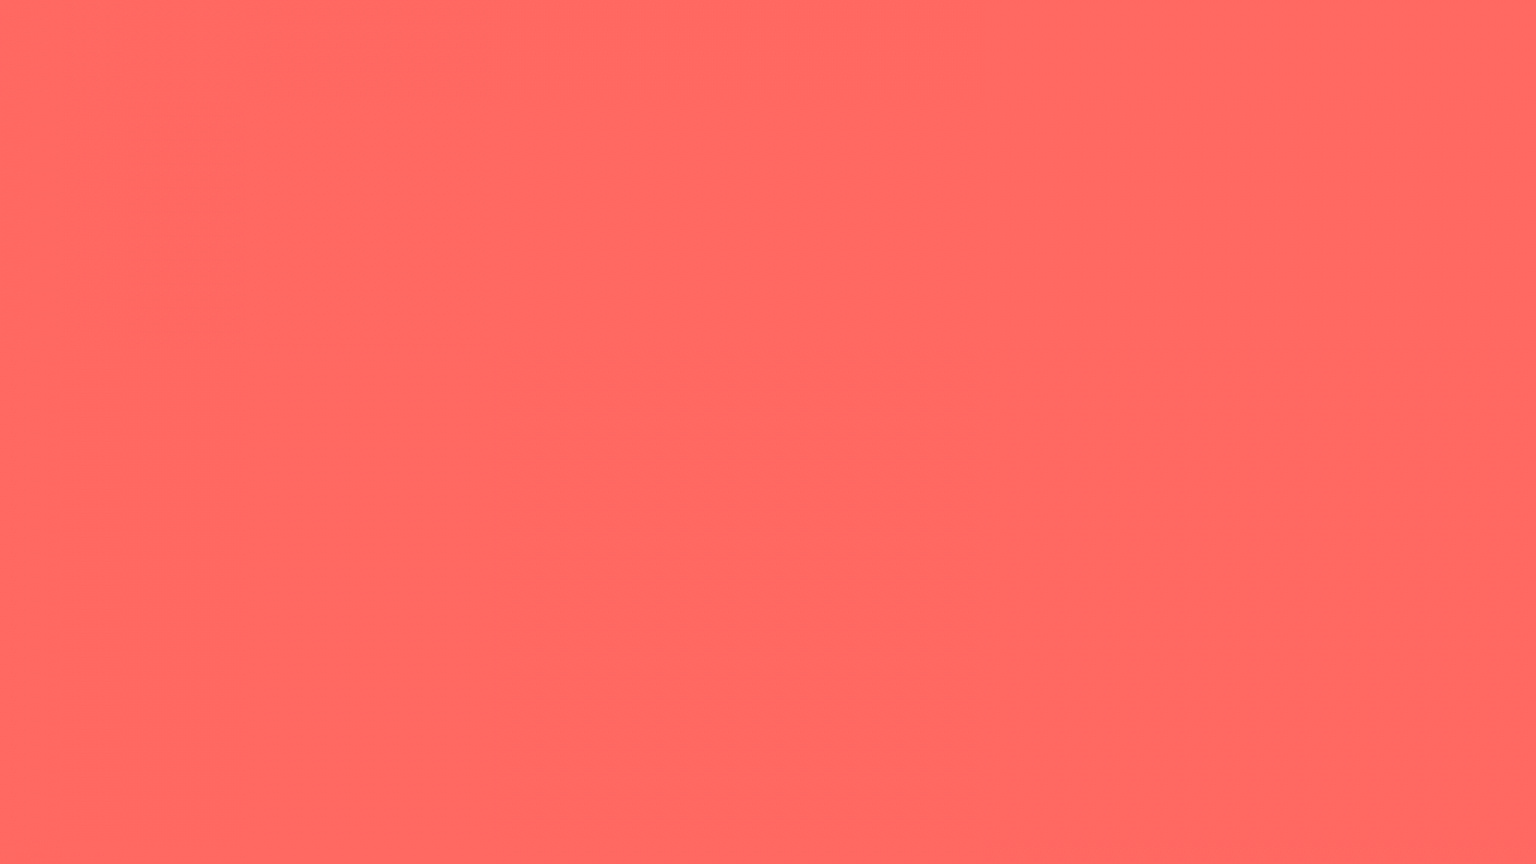 Free Download 1600x1200 Resolution Pastel Red Solid Color Background View And 1600x1200 For Your Desktop Mobile Tablet Explore 74 Pastel Colors Background Pastel Background Wallpaper